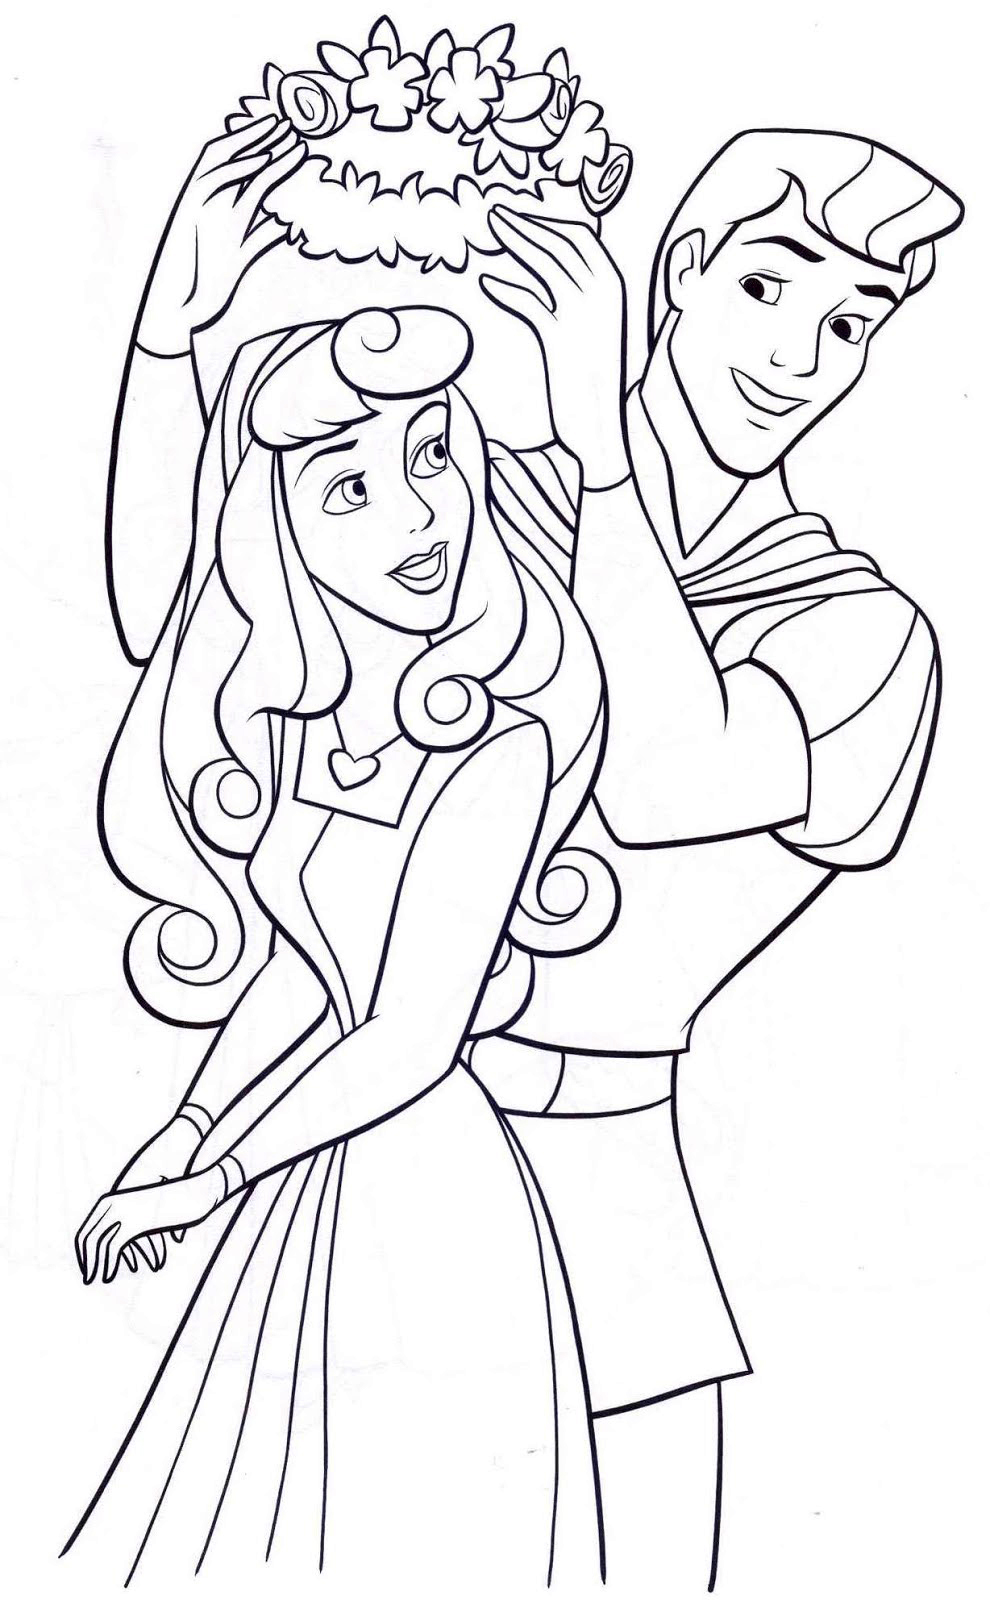 Princess Coloring Pages - Best Coloring Pages For Kids   colouring pages to print disney princess